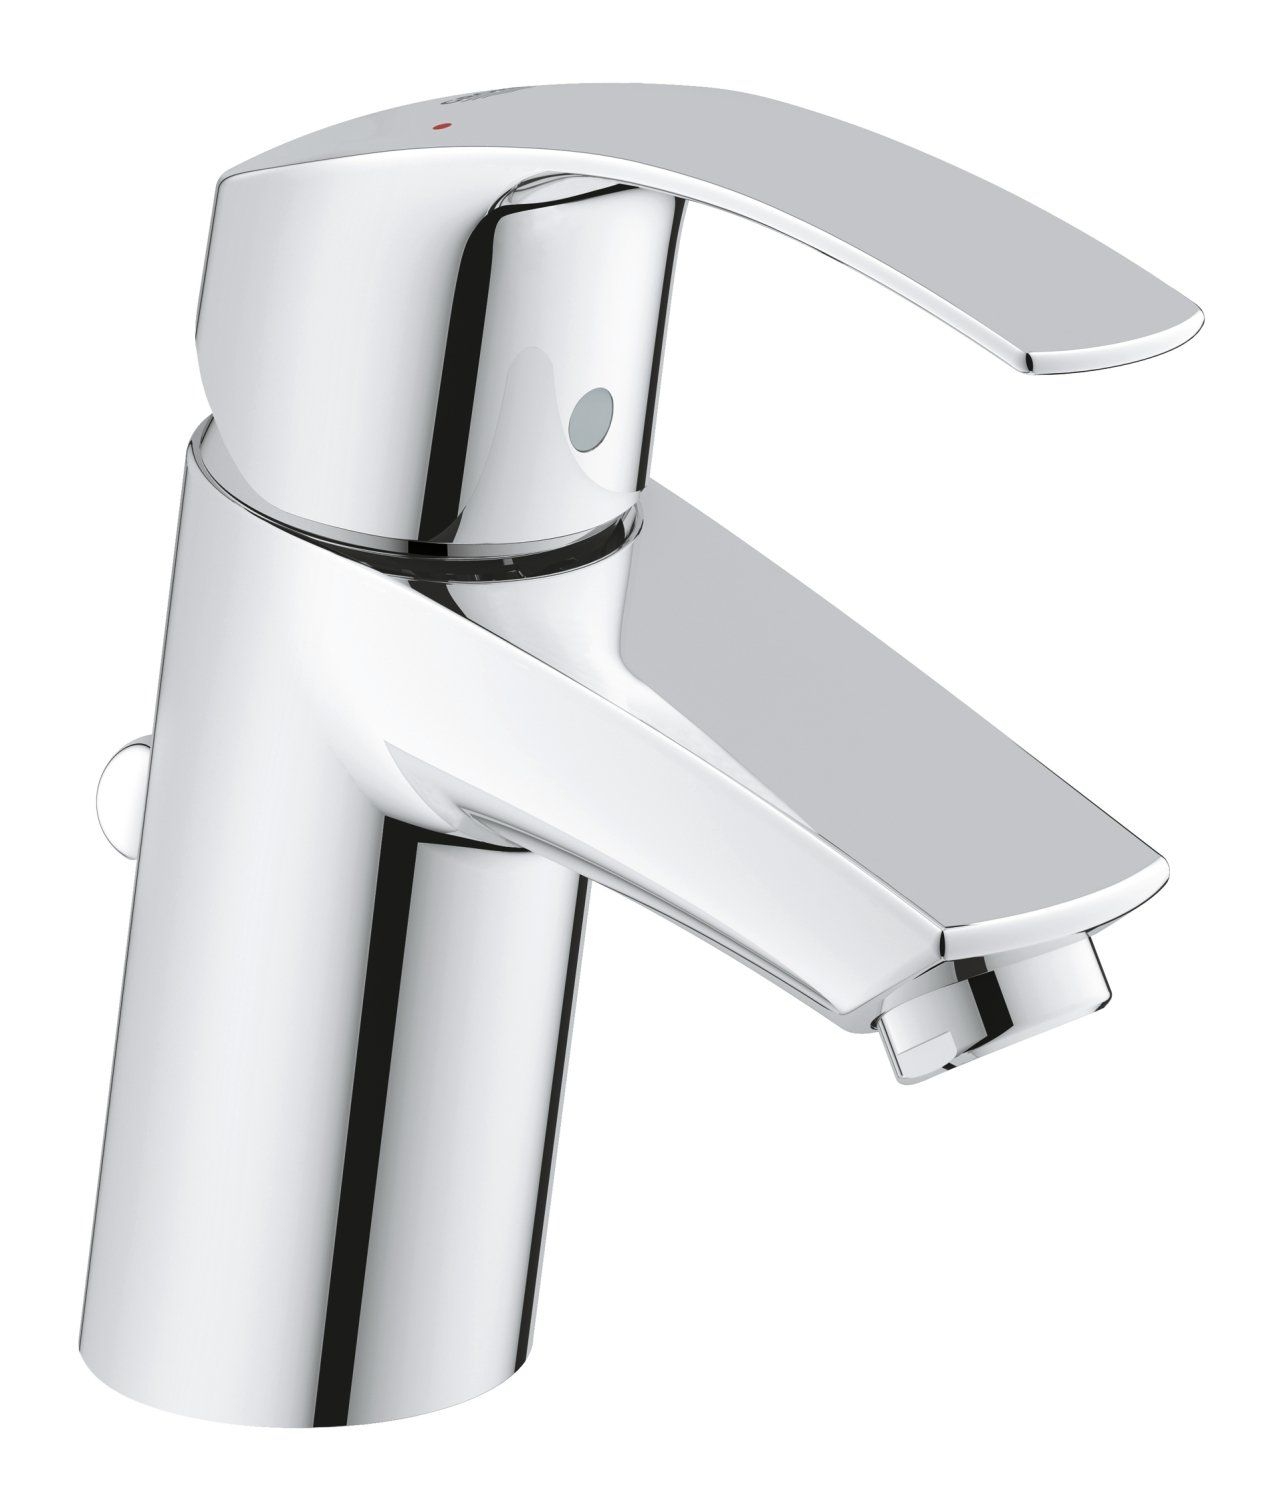 zq design decorationpertaining kitchen supple seemly dainty chic faucet mount usa wall with along faucets hansgrohe parts grohe bathroom also ideas decor